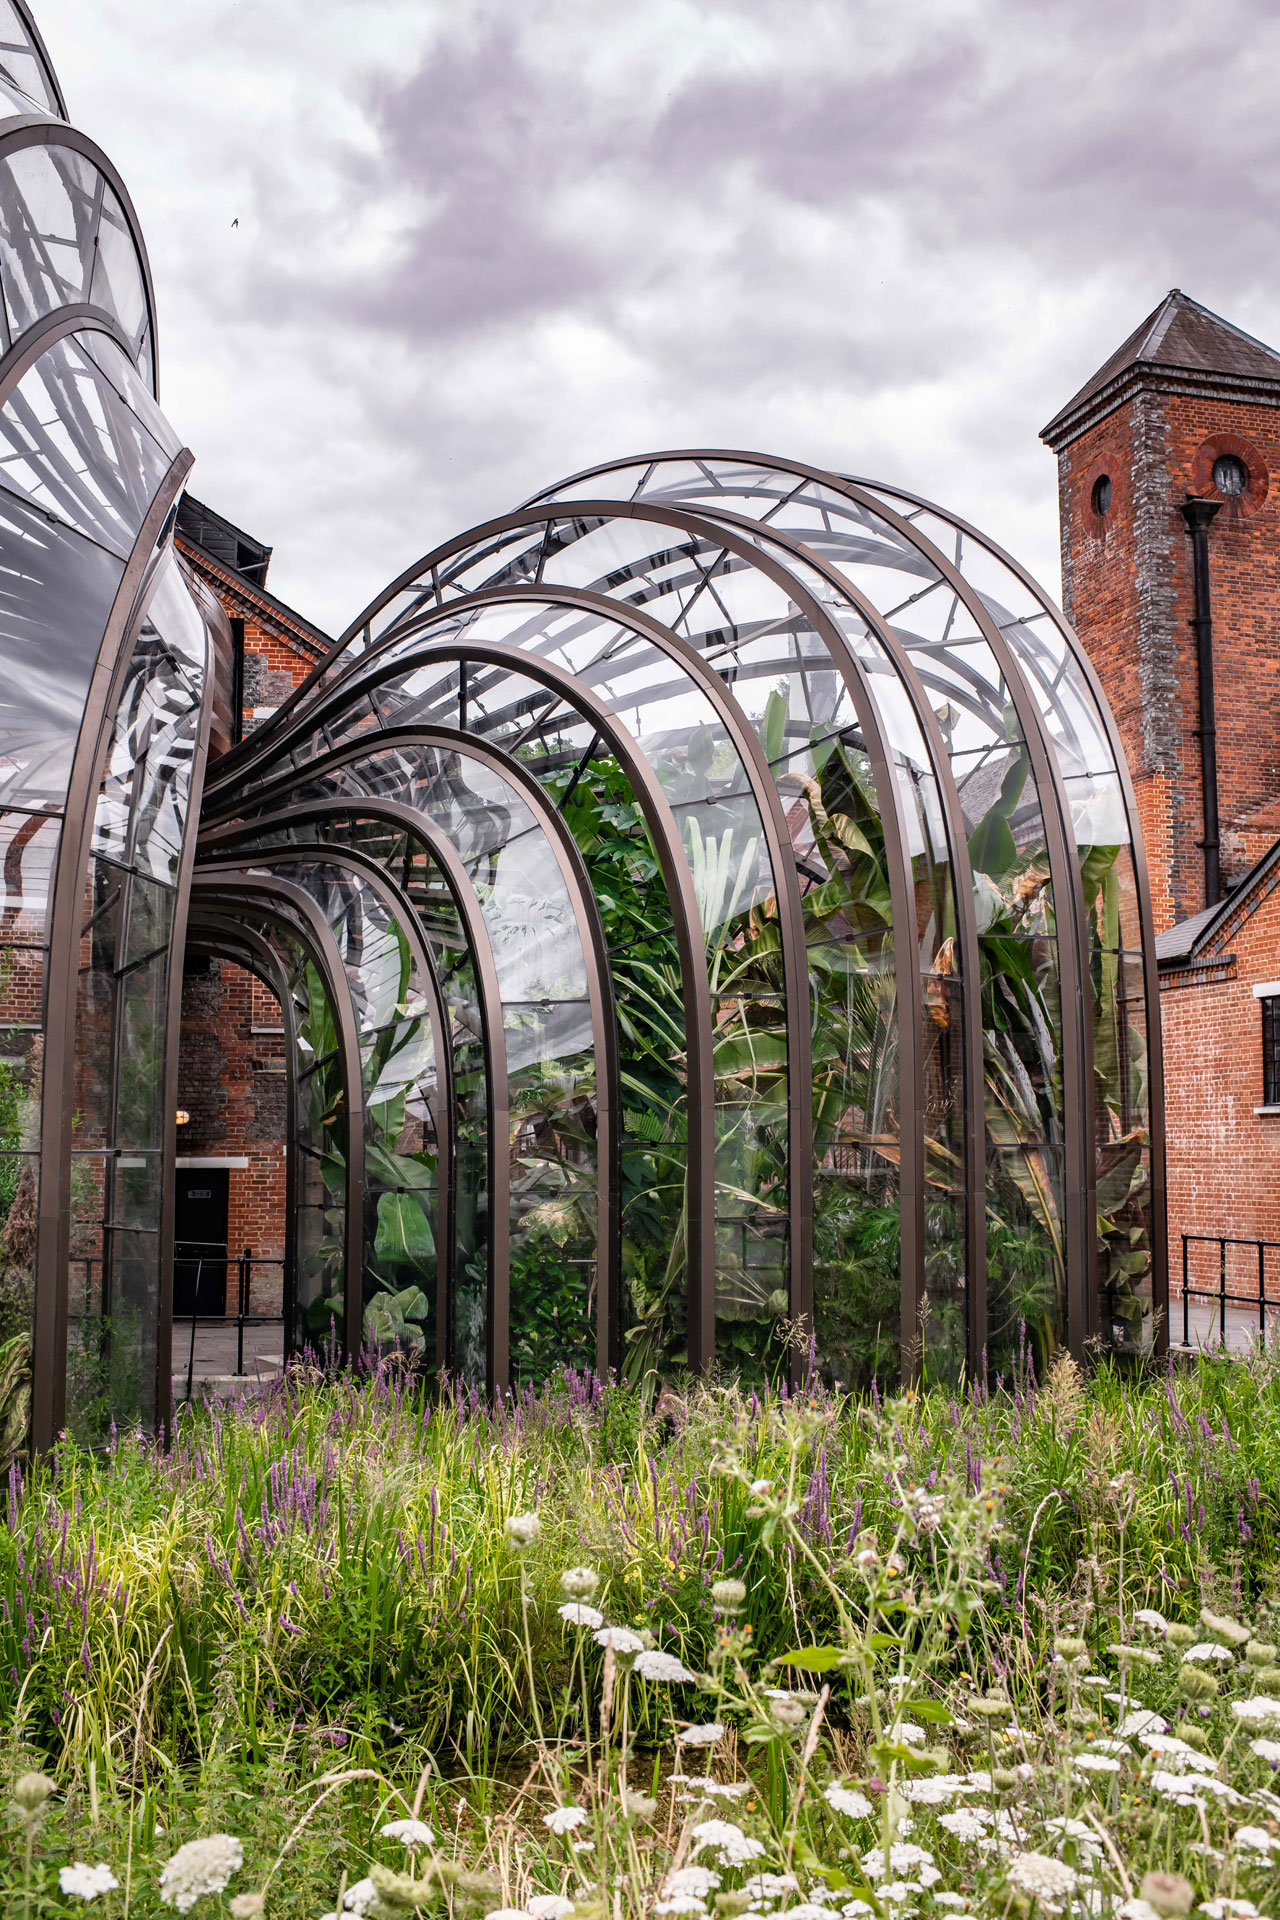 Bombay Sapphire's distillery at Laverstoke Mill. Photo by Elias Joidos © Yatzerland Ltd.